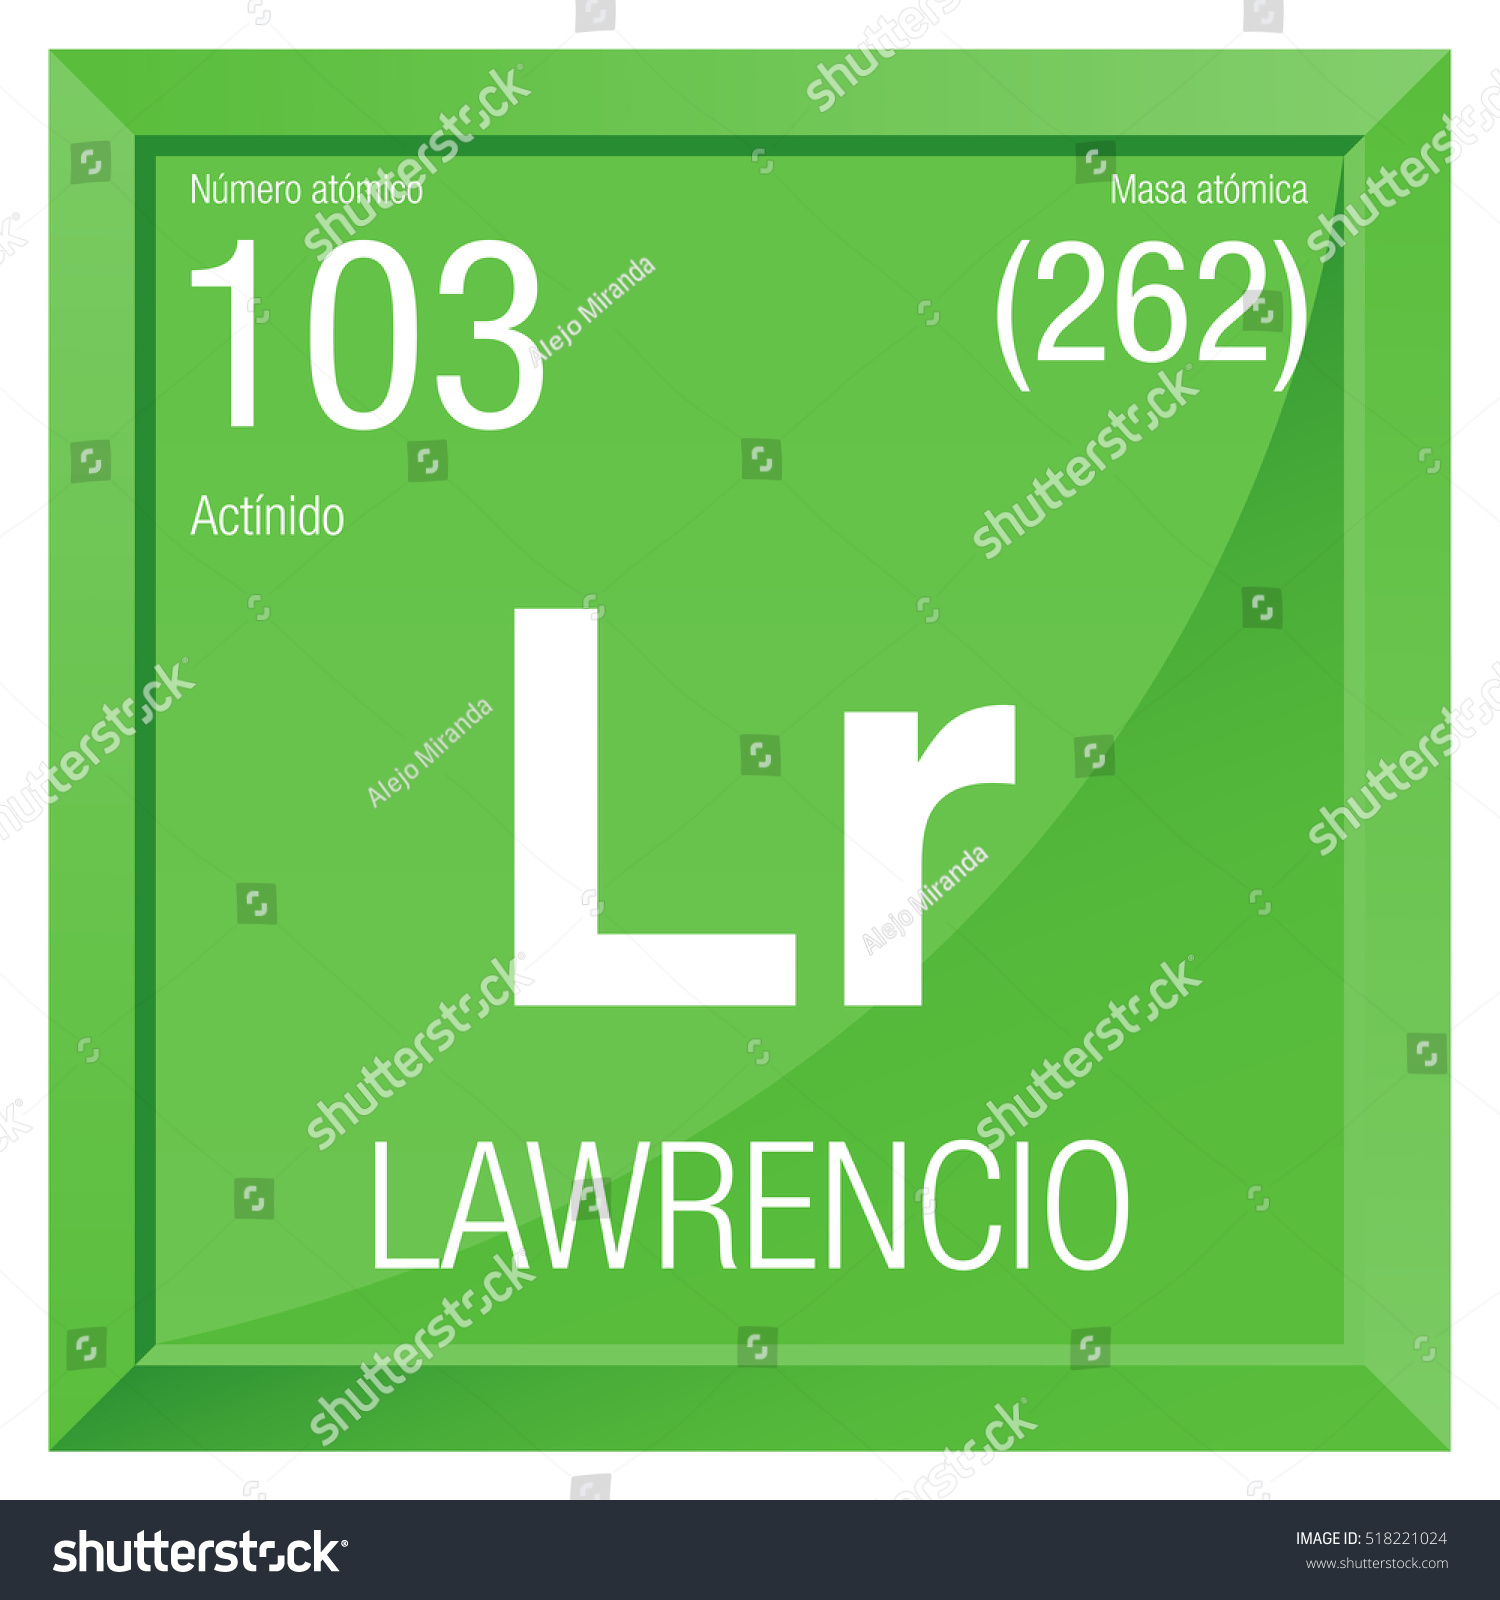 Lawrencio Symbol Lawrencium Spanish Language Element Stock Vector ...